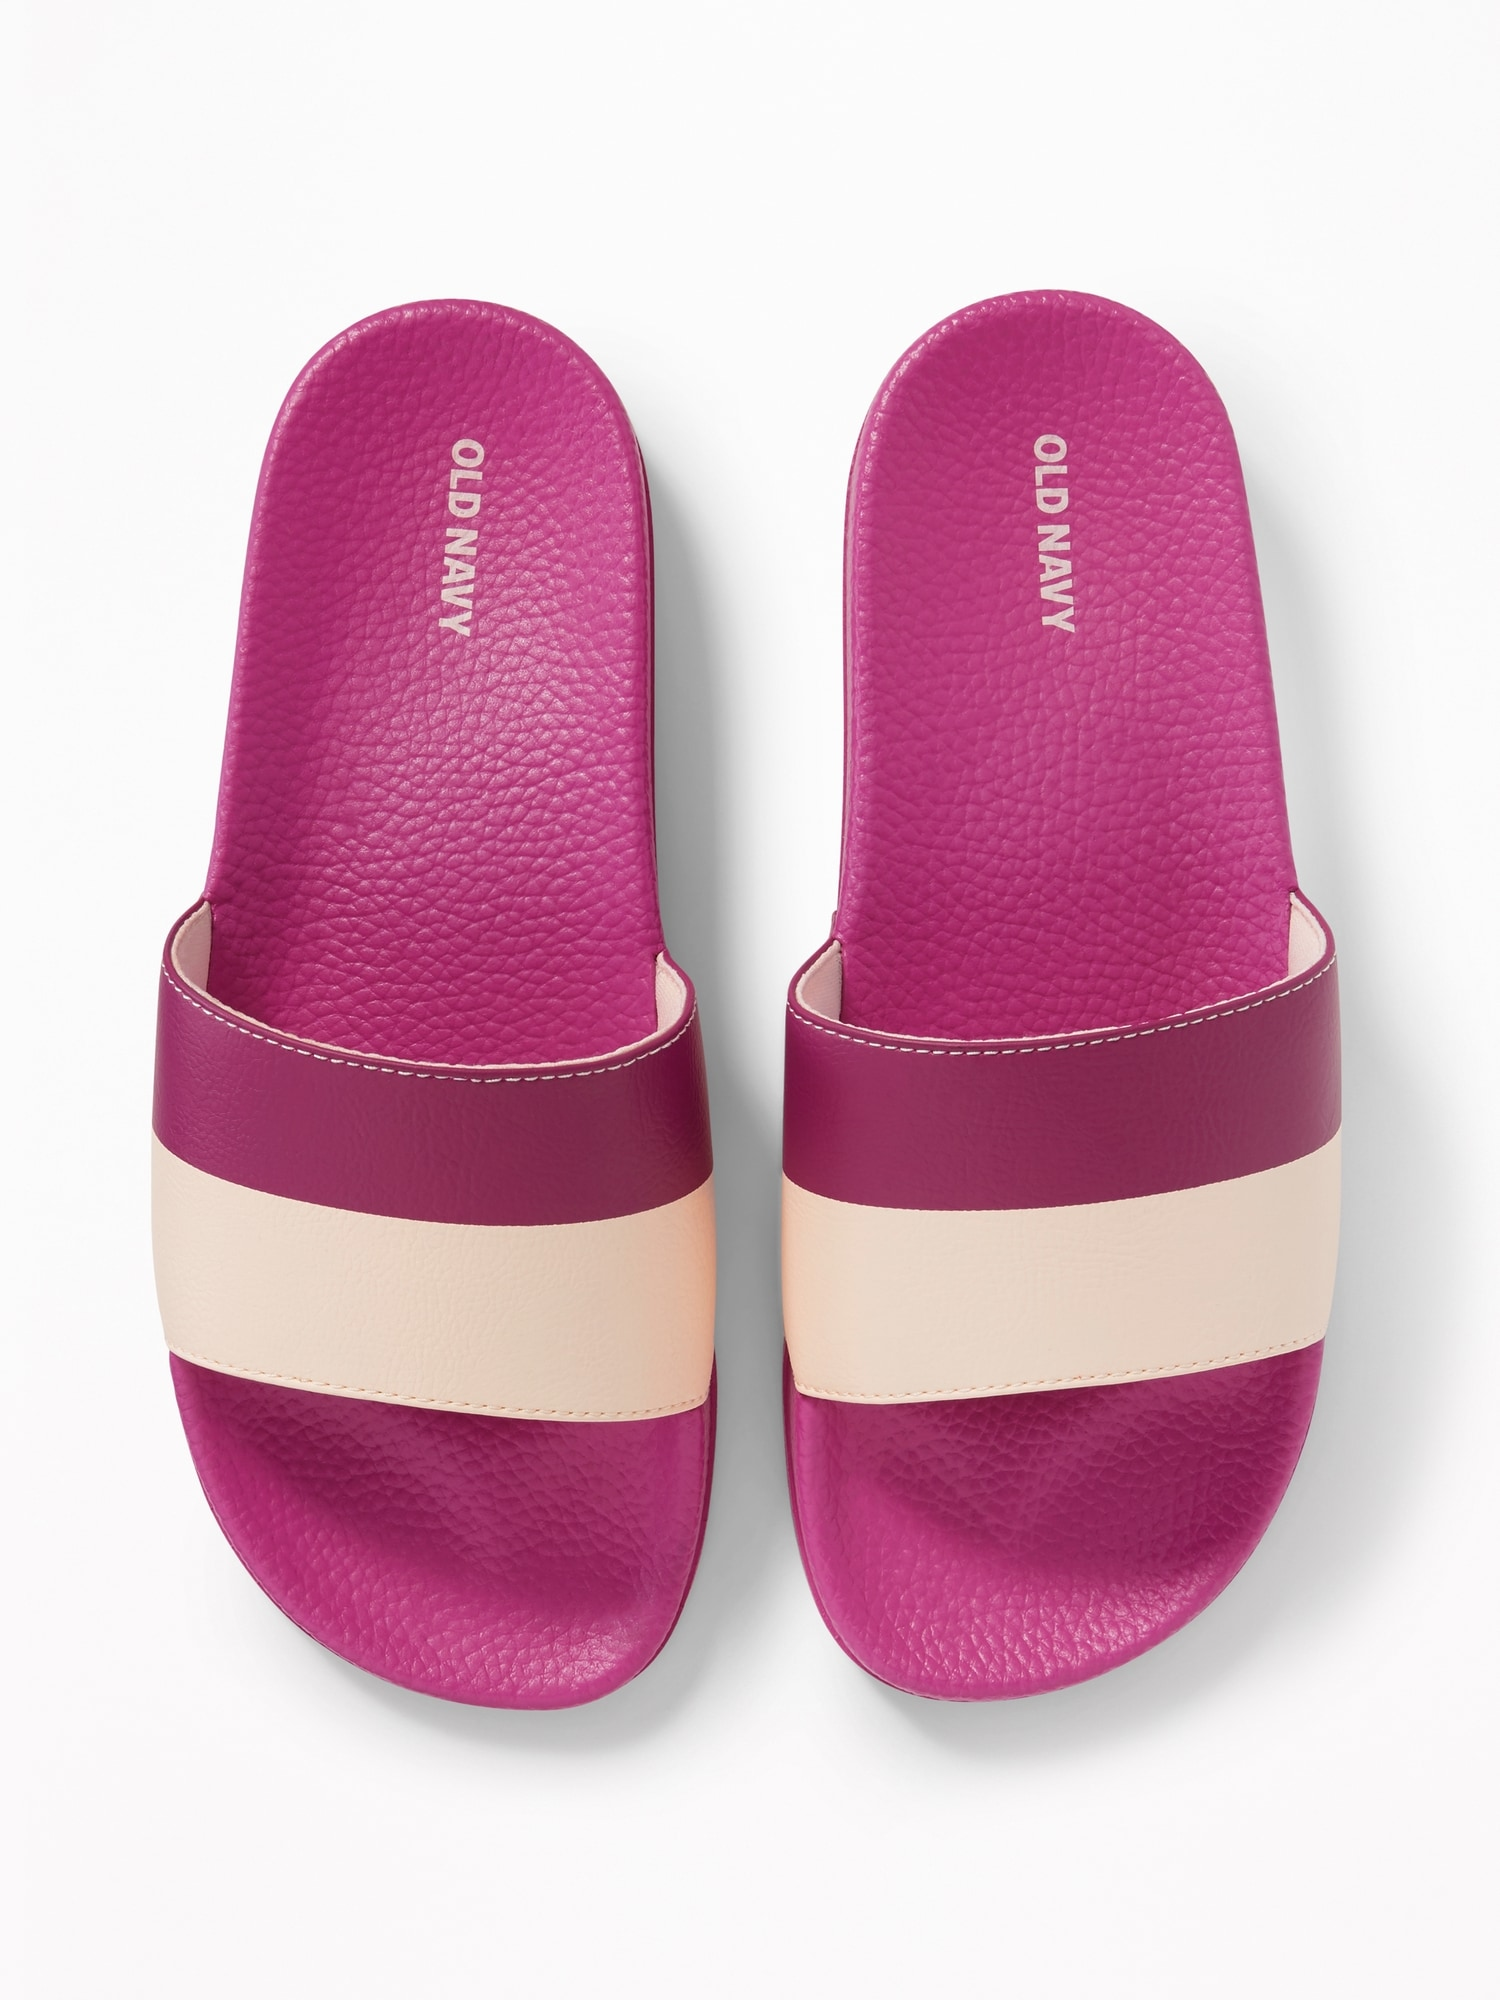 ba4b2eb317935 Pool Slide Sandals.  16.98 8.98. Buy Now Review It. At Old Navy